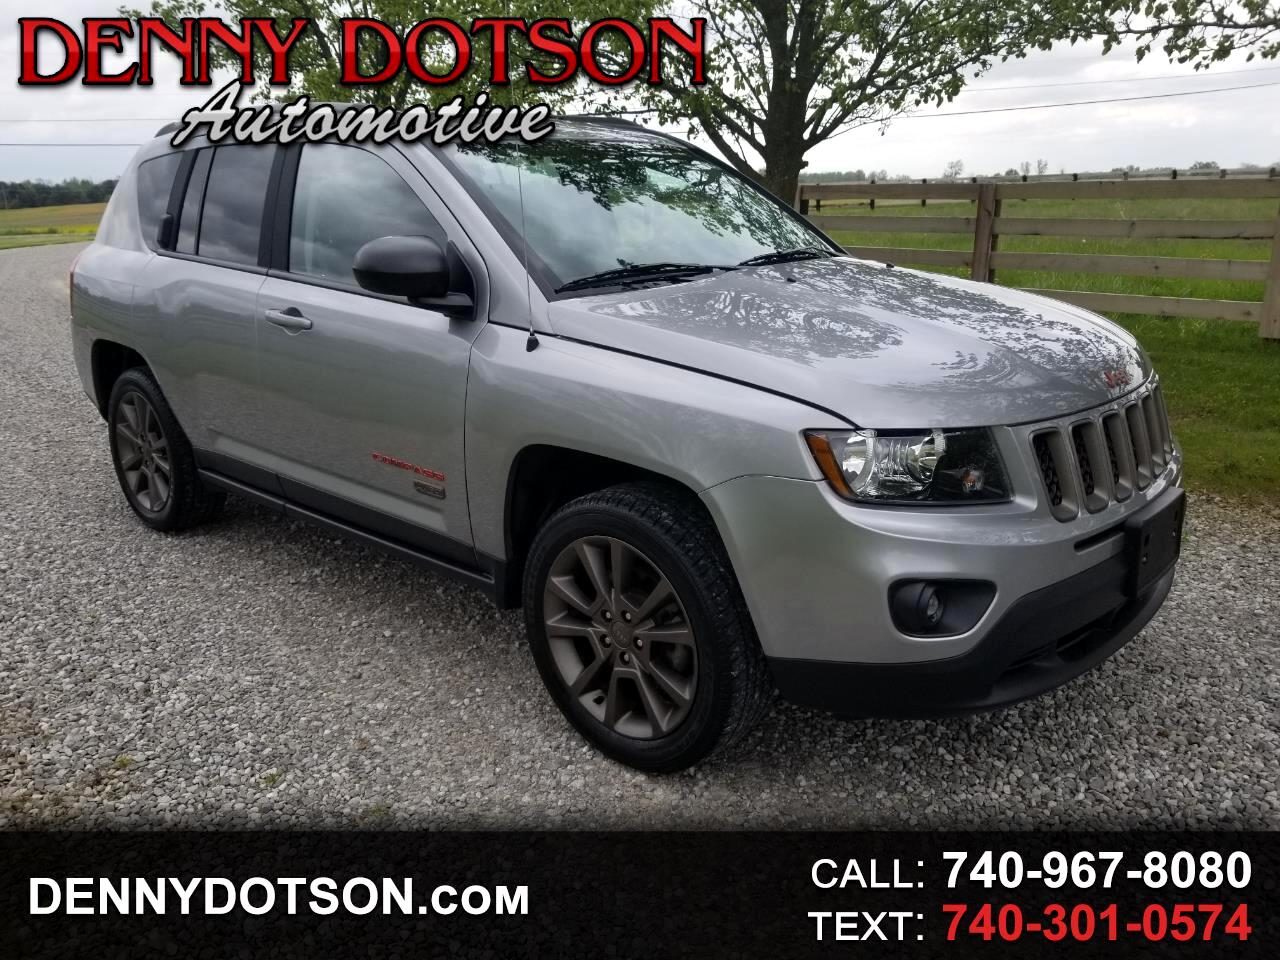 2016 Jeep Compass FWD 4dr 75th Anniversary